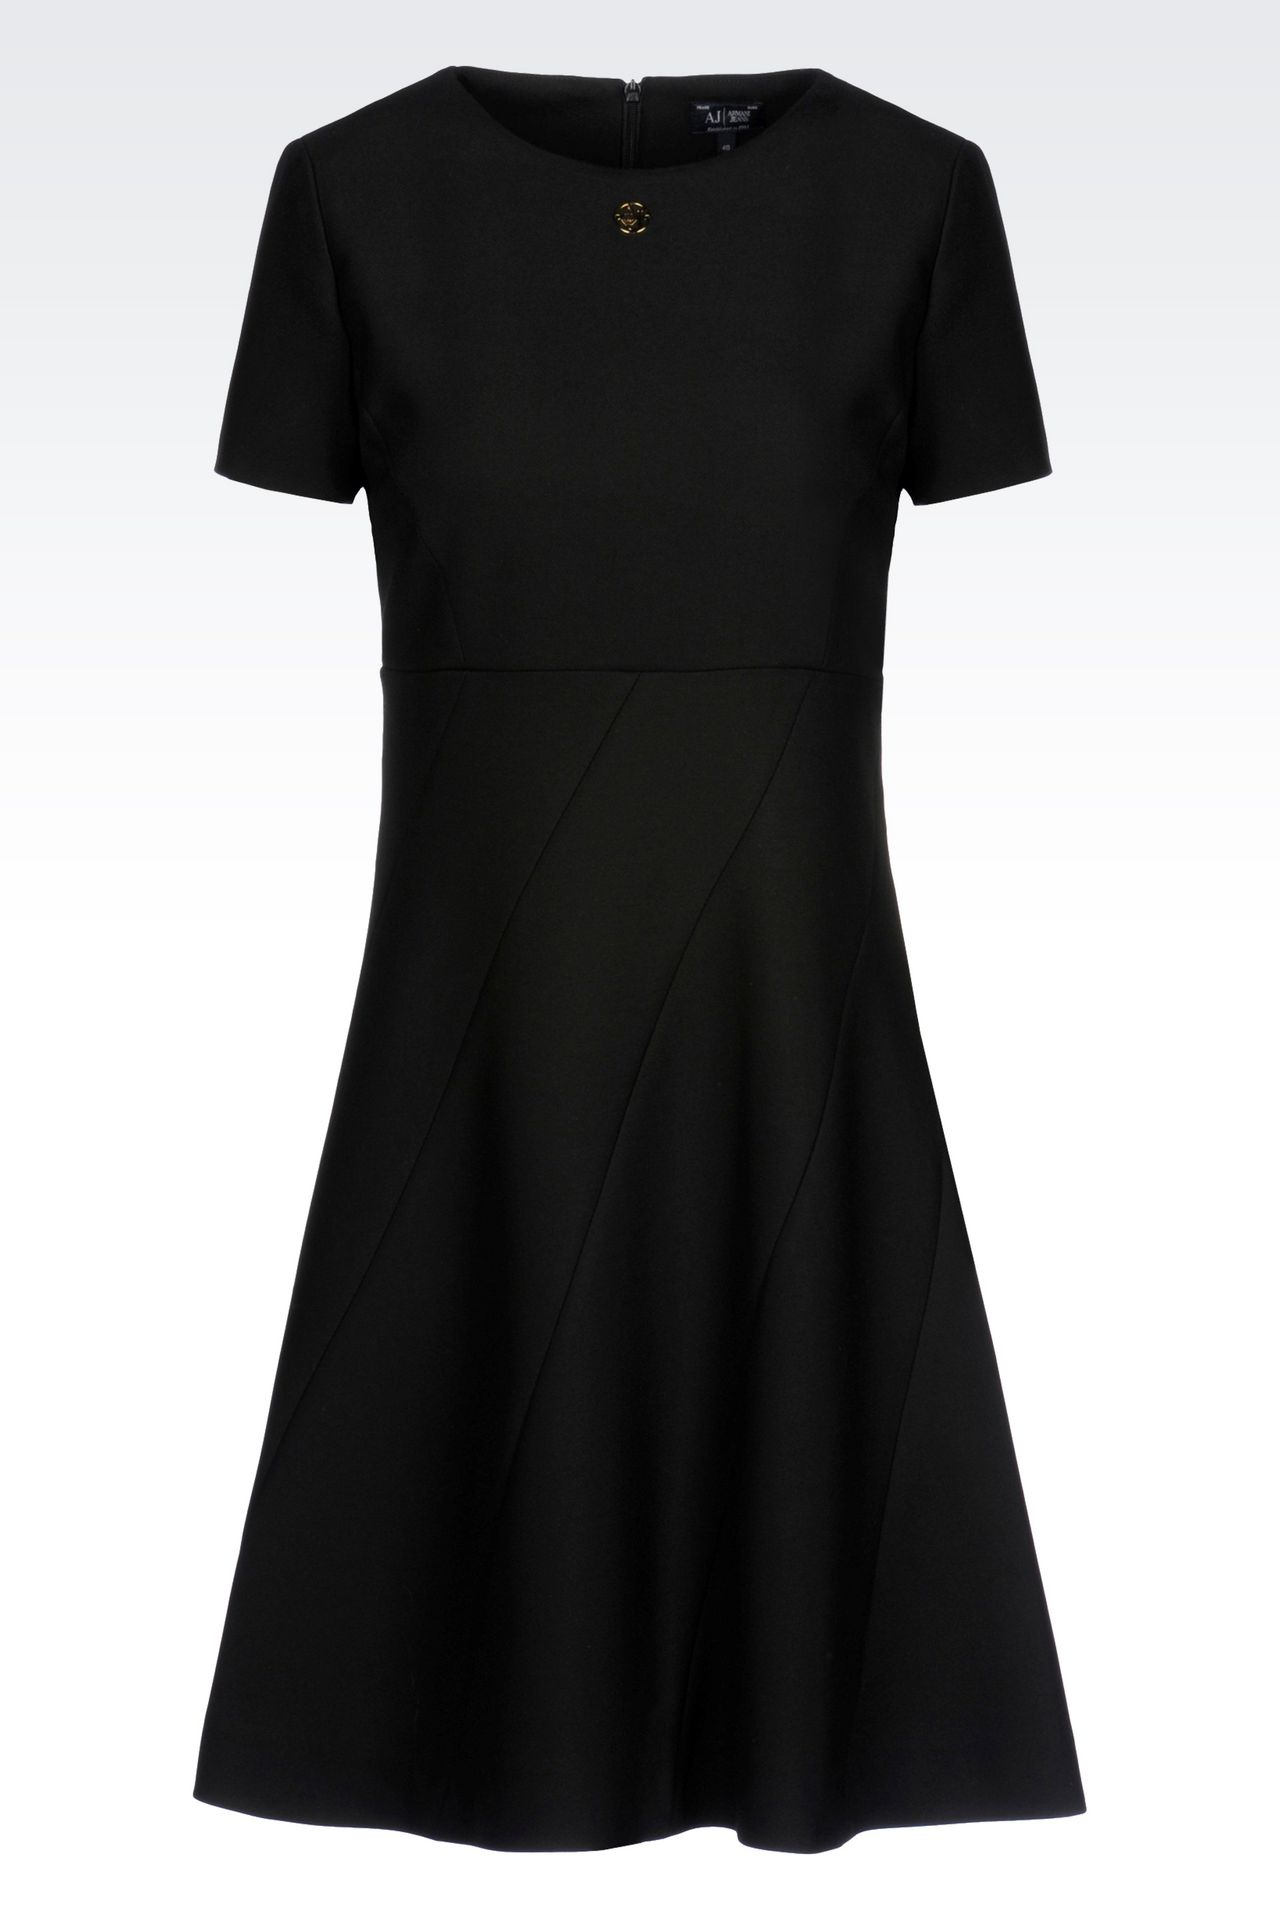 DRESS IN TECHNICAL VISCOSE TWILL: Short Dresses Women by Armani - 0